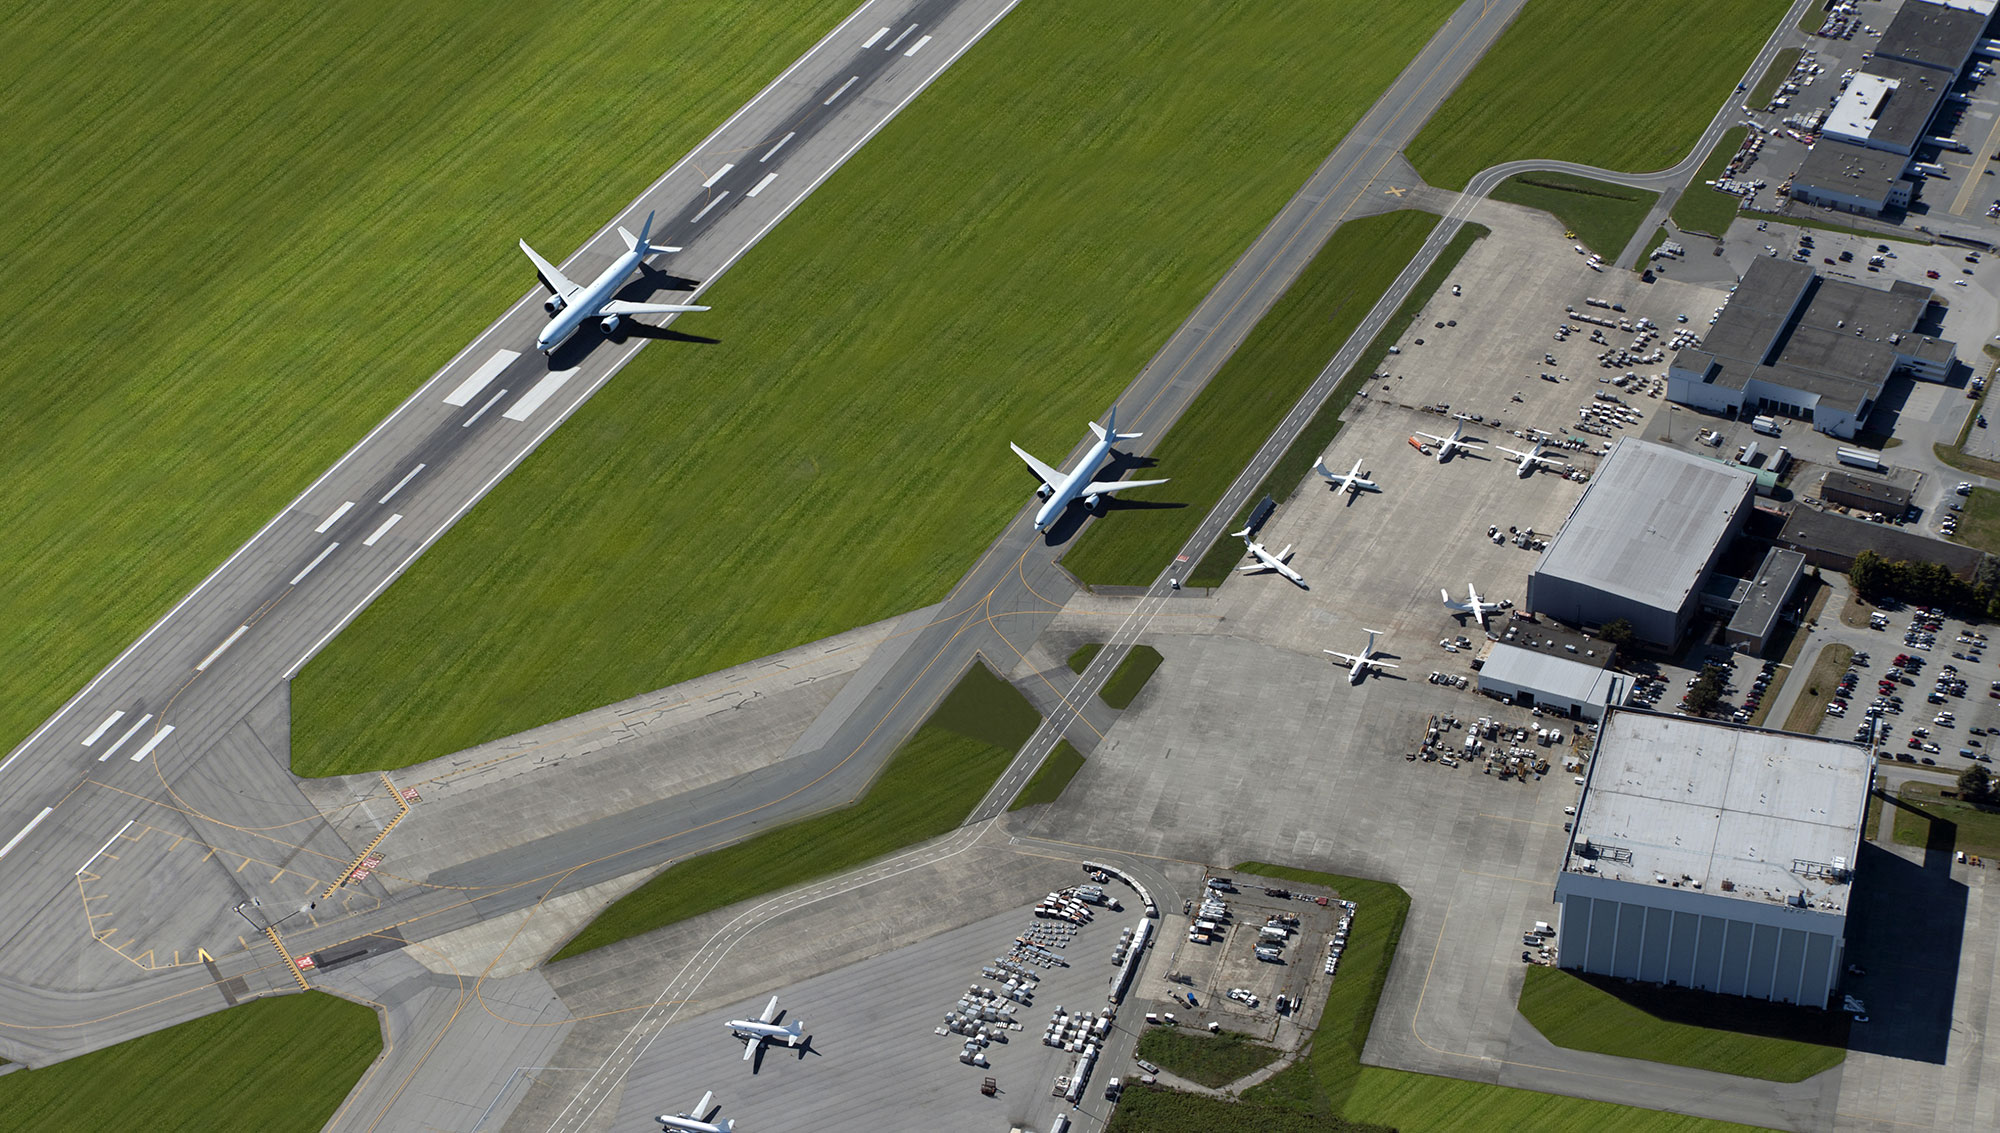 airport runways and airplanes